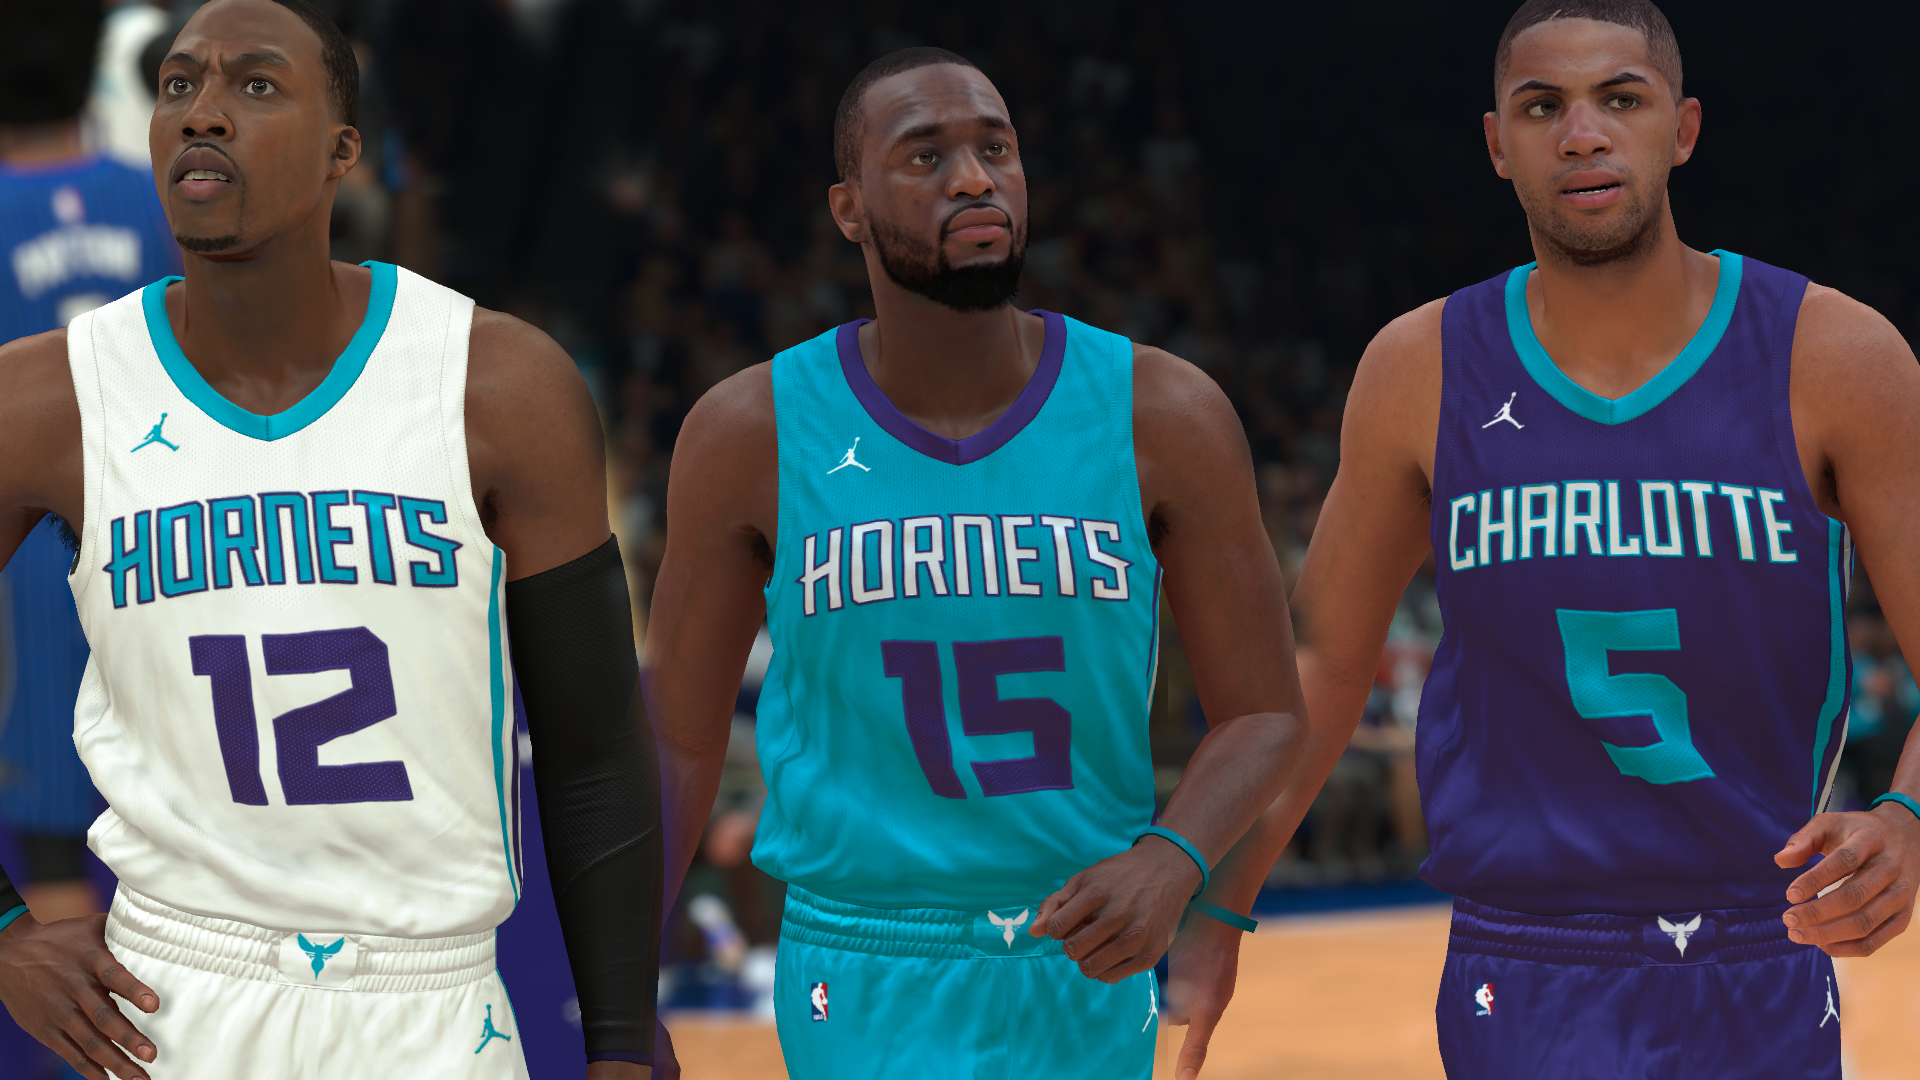 Charlotte Hornets Jersey (pinoy21)